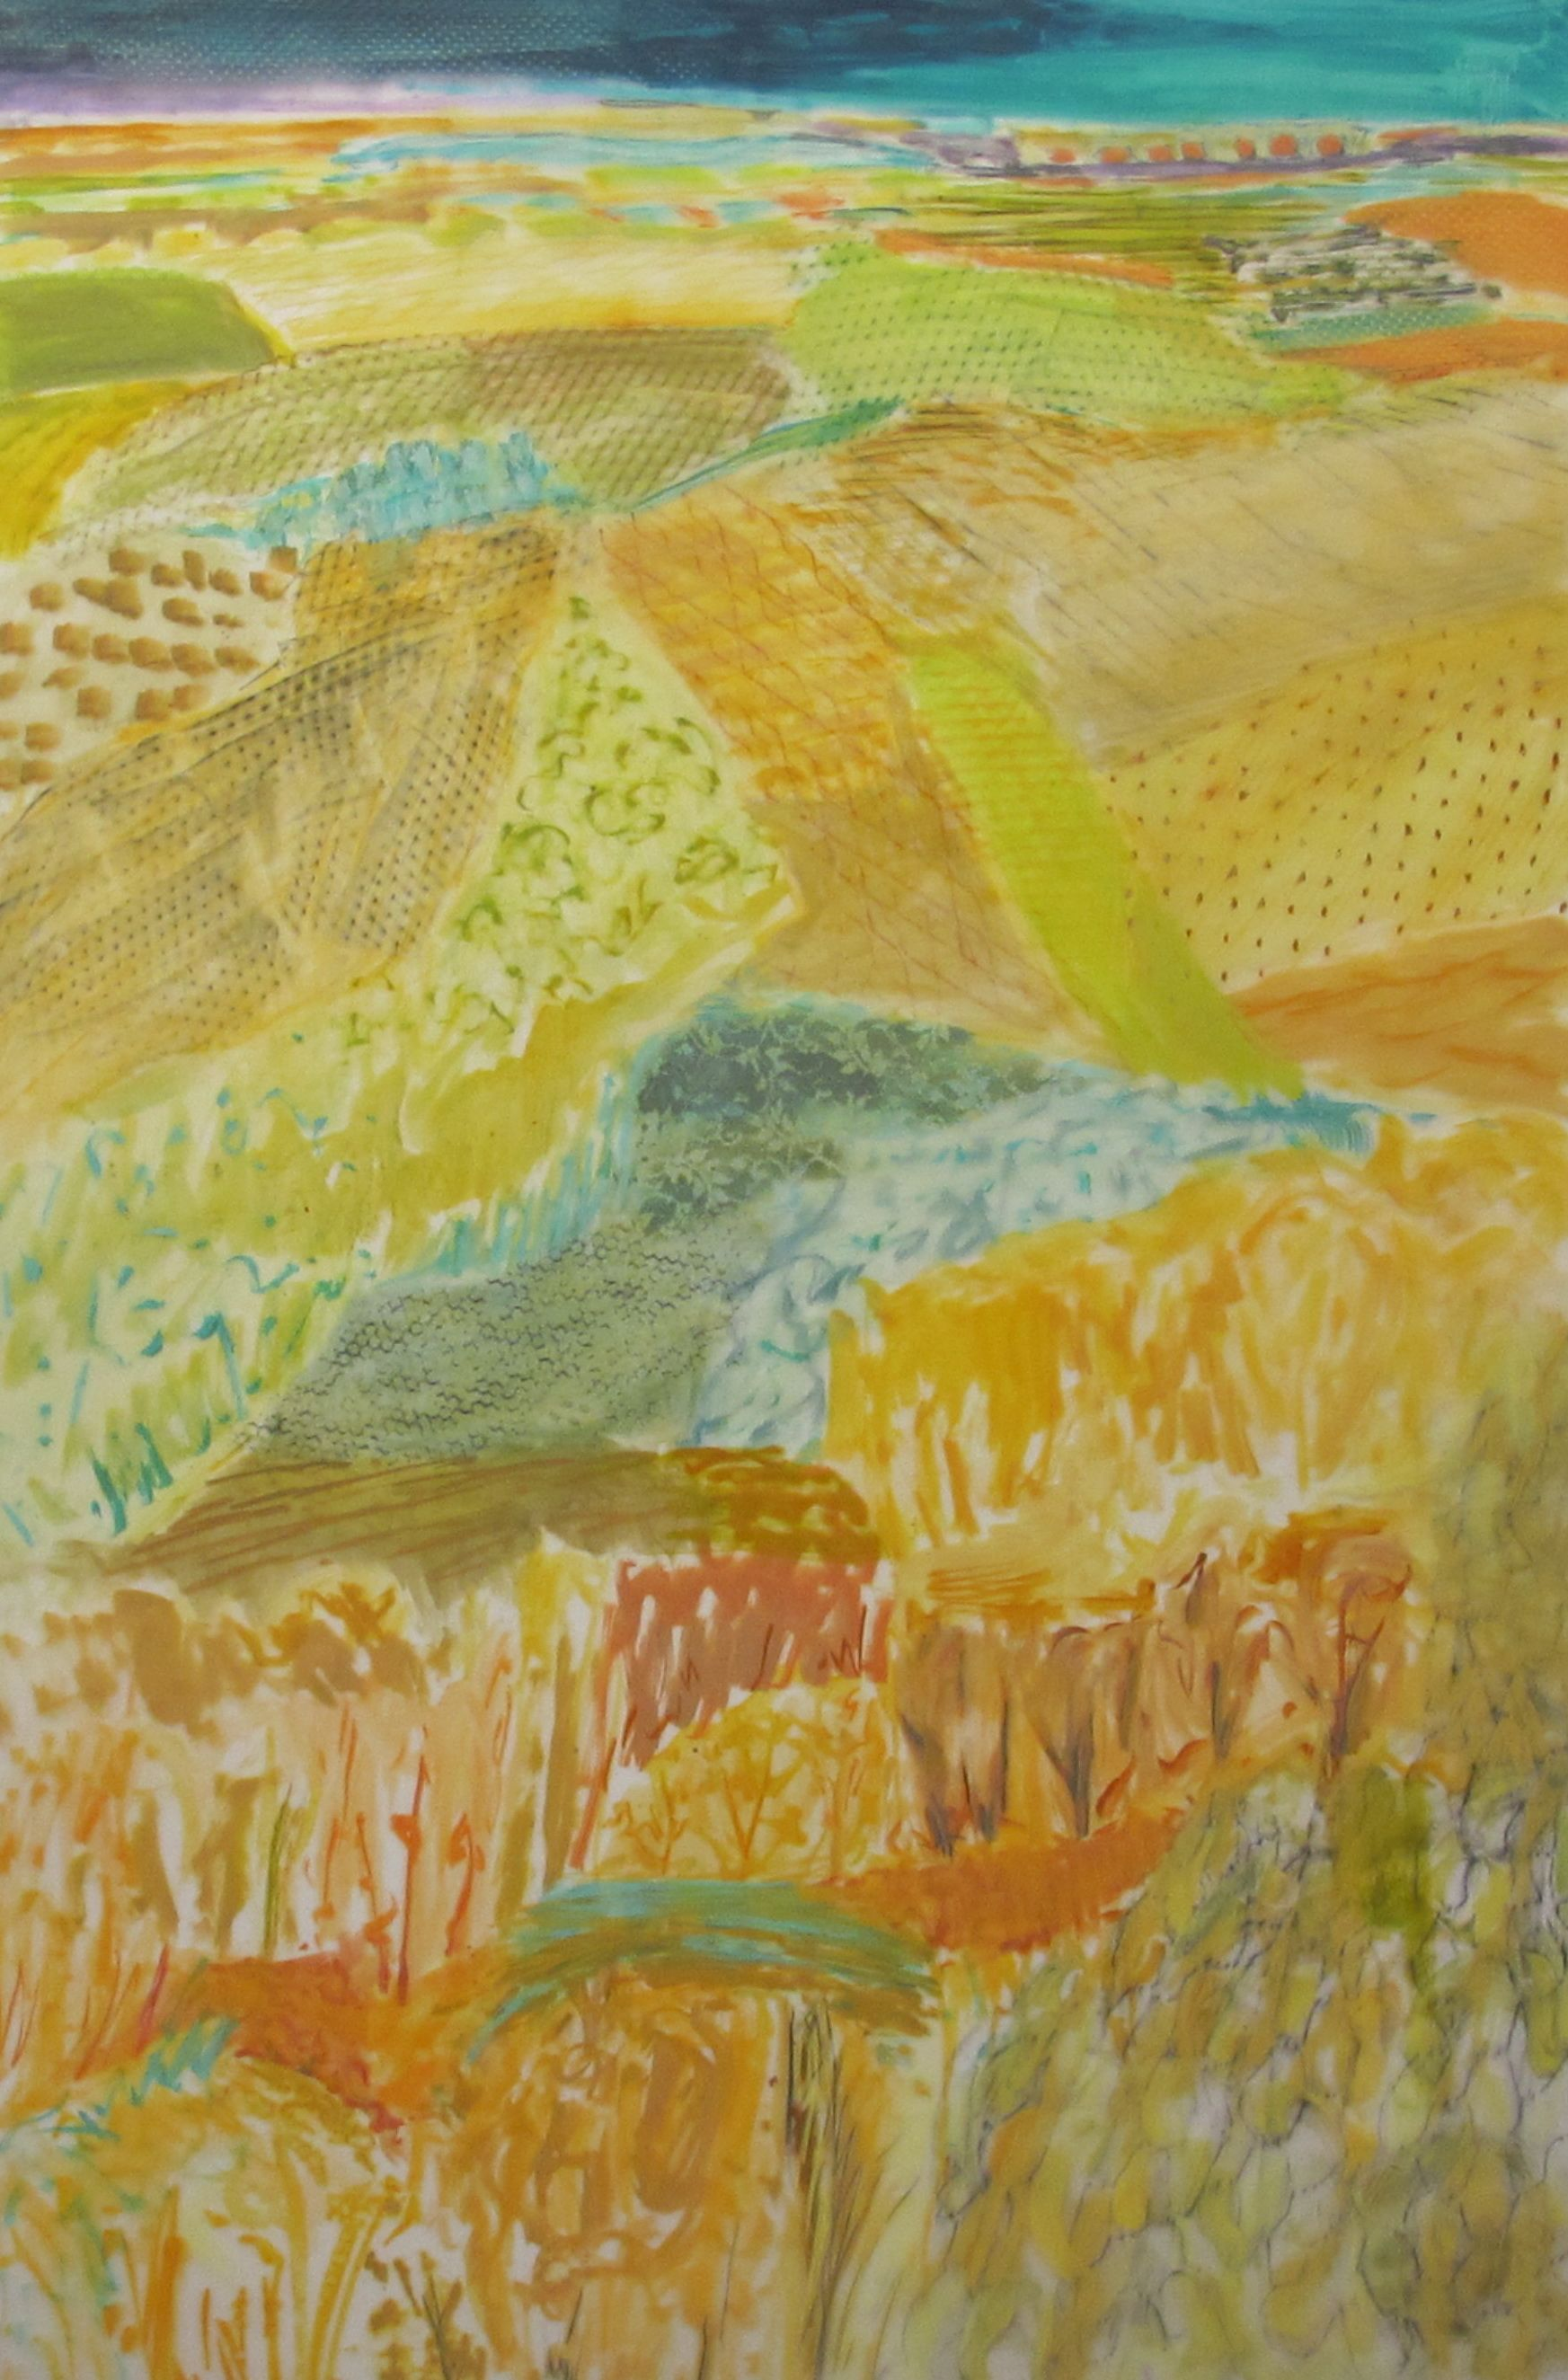 Lexan Patterned land study oil mixed media on lexan 72  x 48 inches (2).jpg